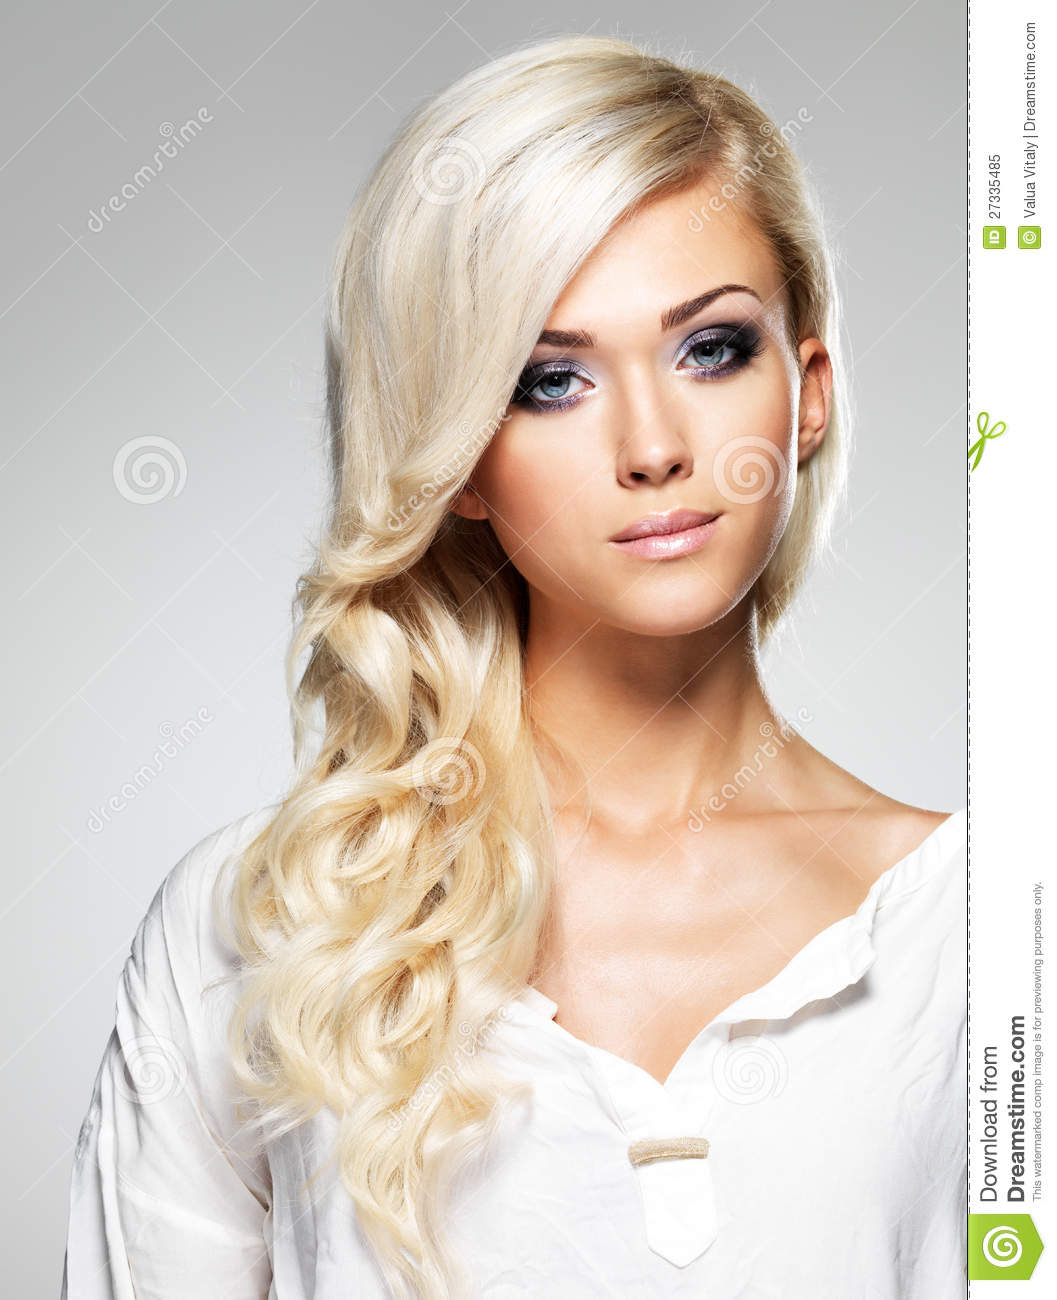 Fashion Model With Long White Hair Stock Image - Image ...